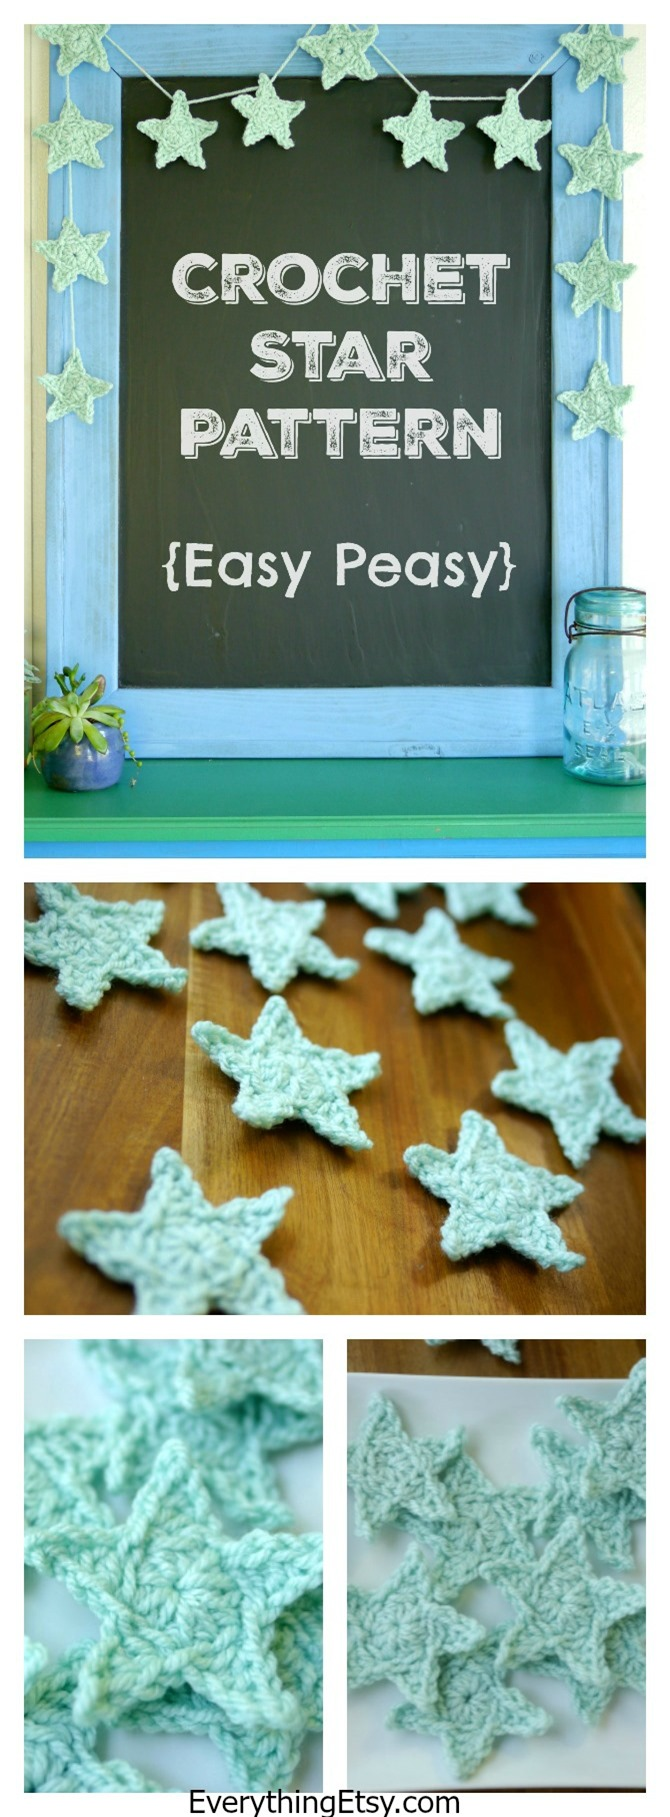 Crochet Star Pattern {Free} on EverythingEtsy.com